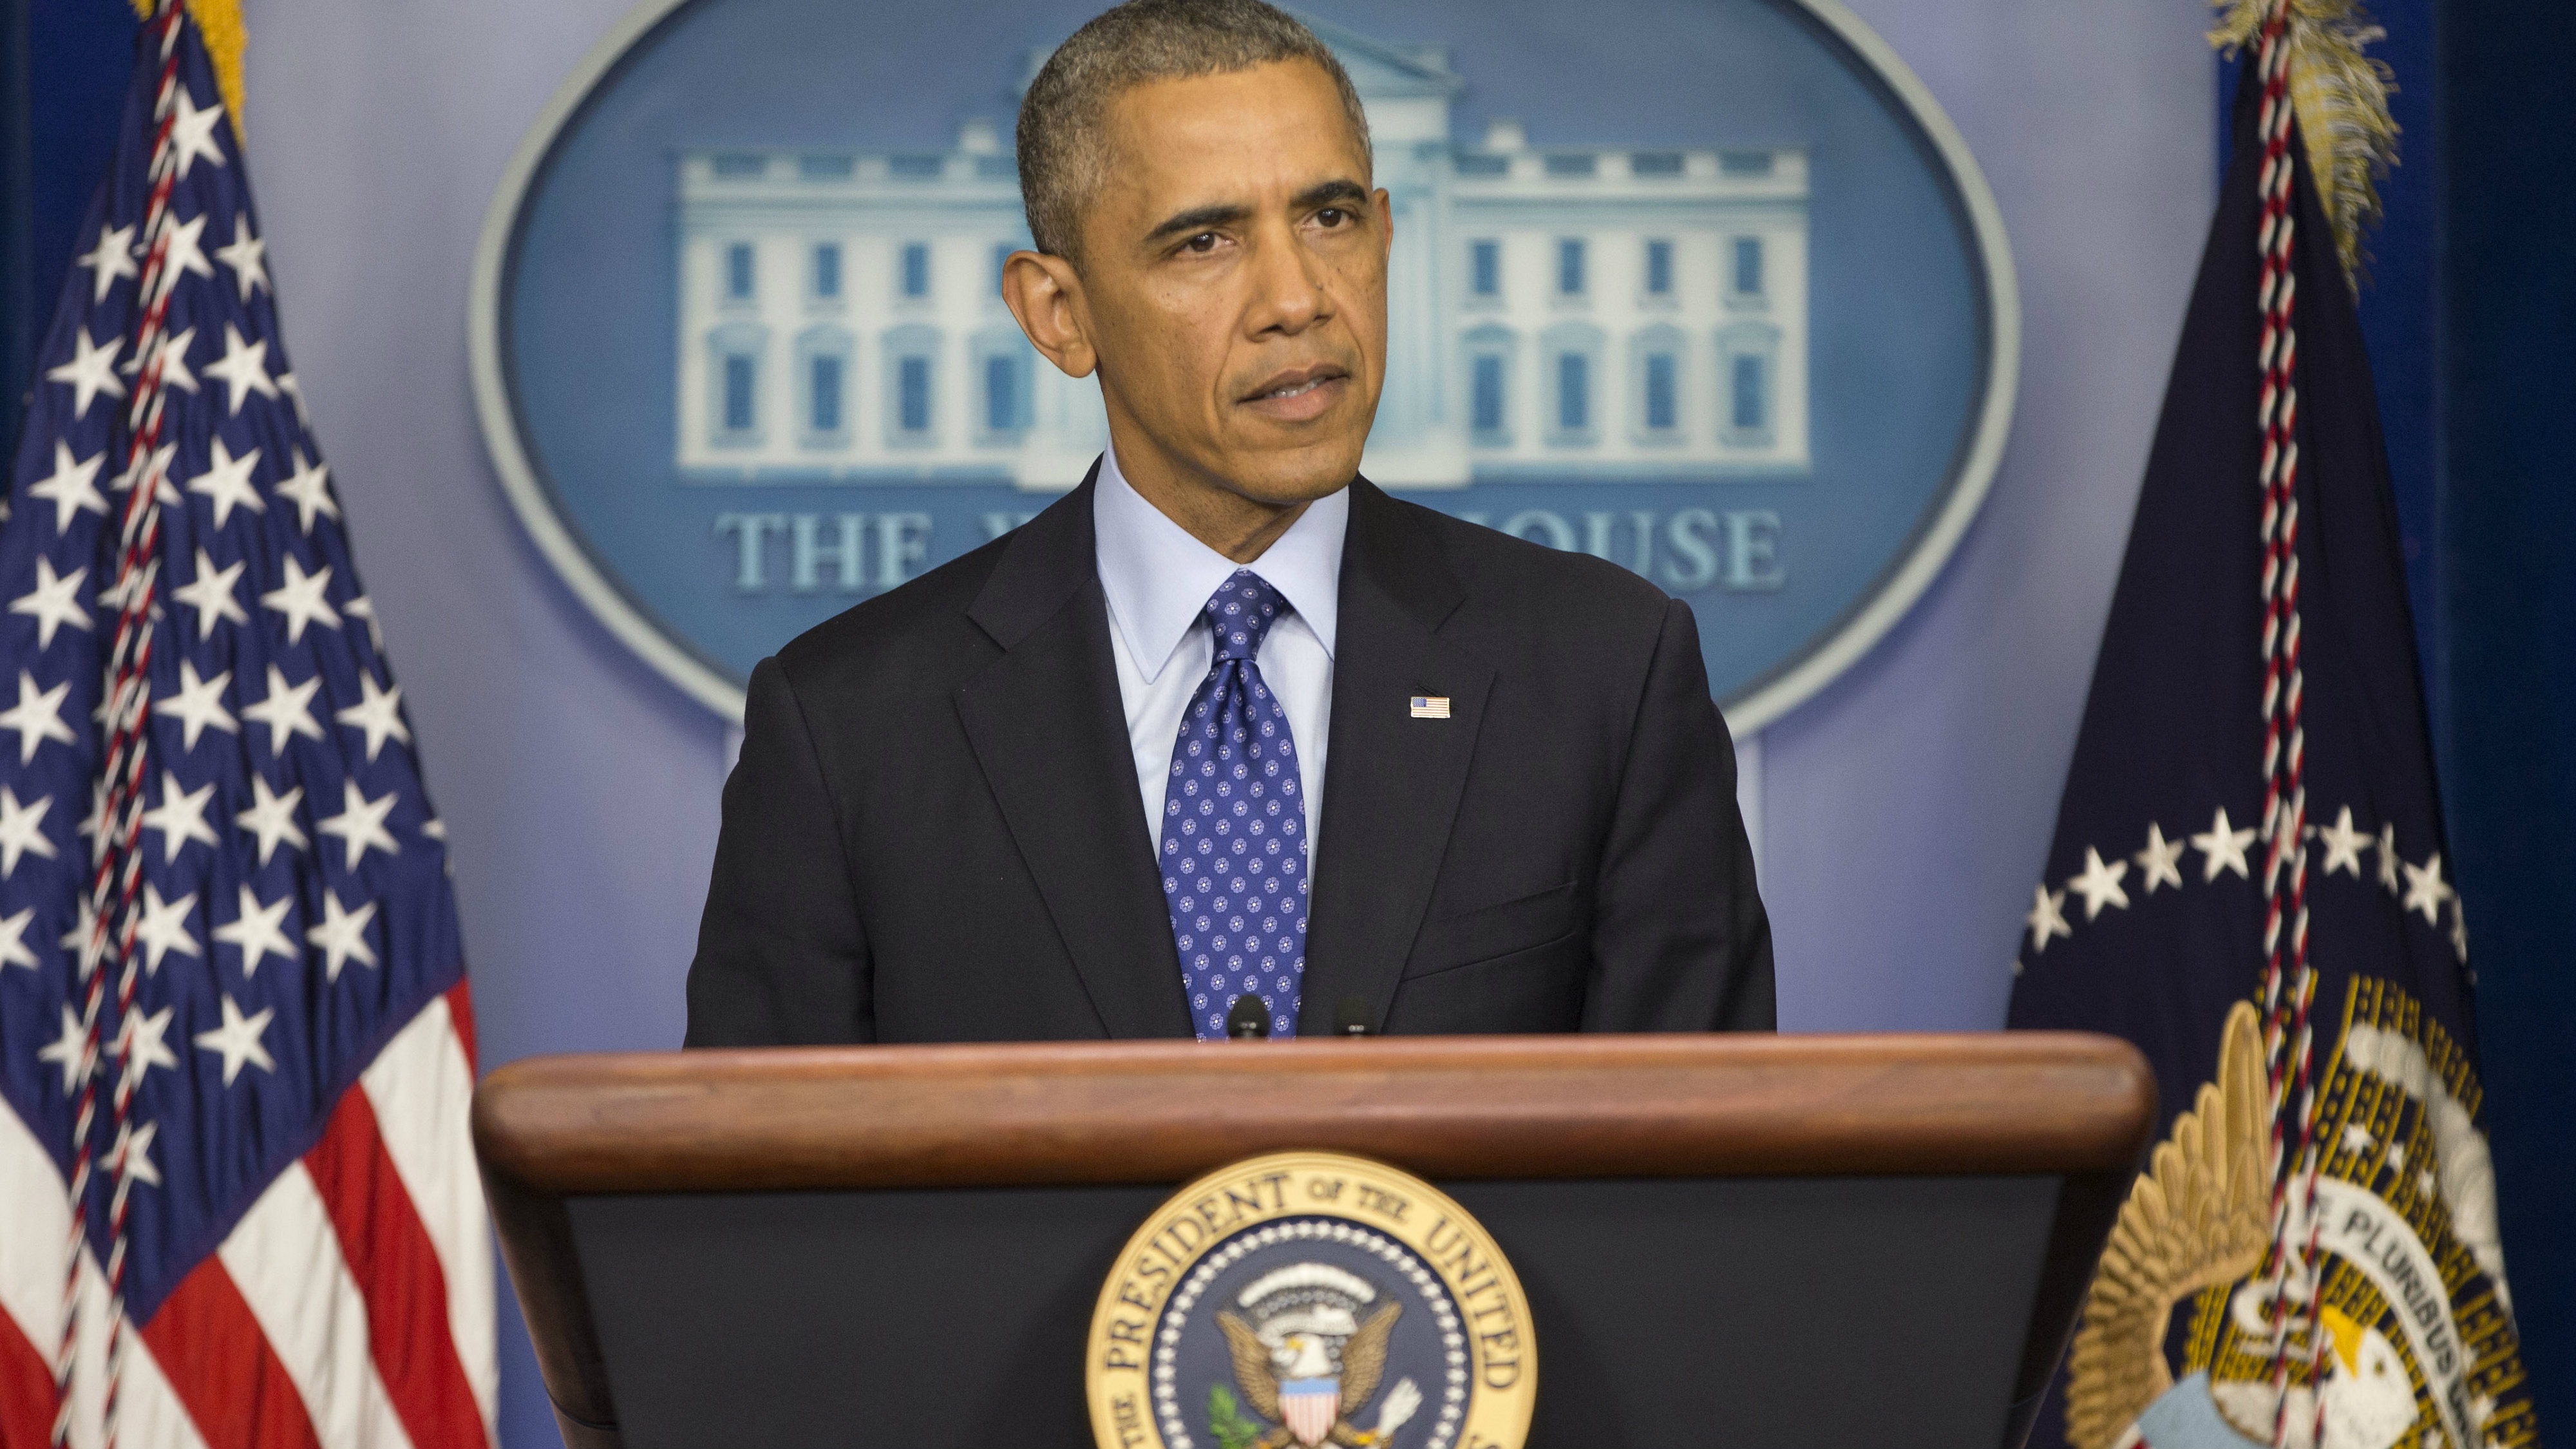 <p>President Barack Obama speaks to members of the media about the situation in Iraq on June 19, 2014. The Obama administration is weighing whether to press the Shiite prime minister in Baghdad to step down in a last-ditch effort to prevent disgruntled Sunnis from igniting a full-scale civil war.</p>